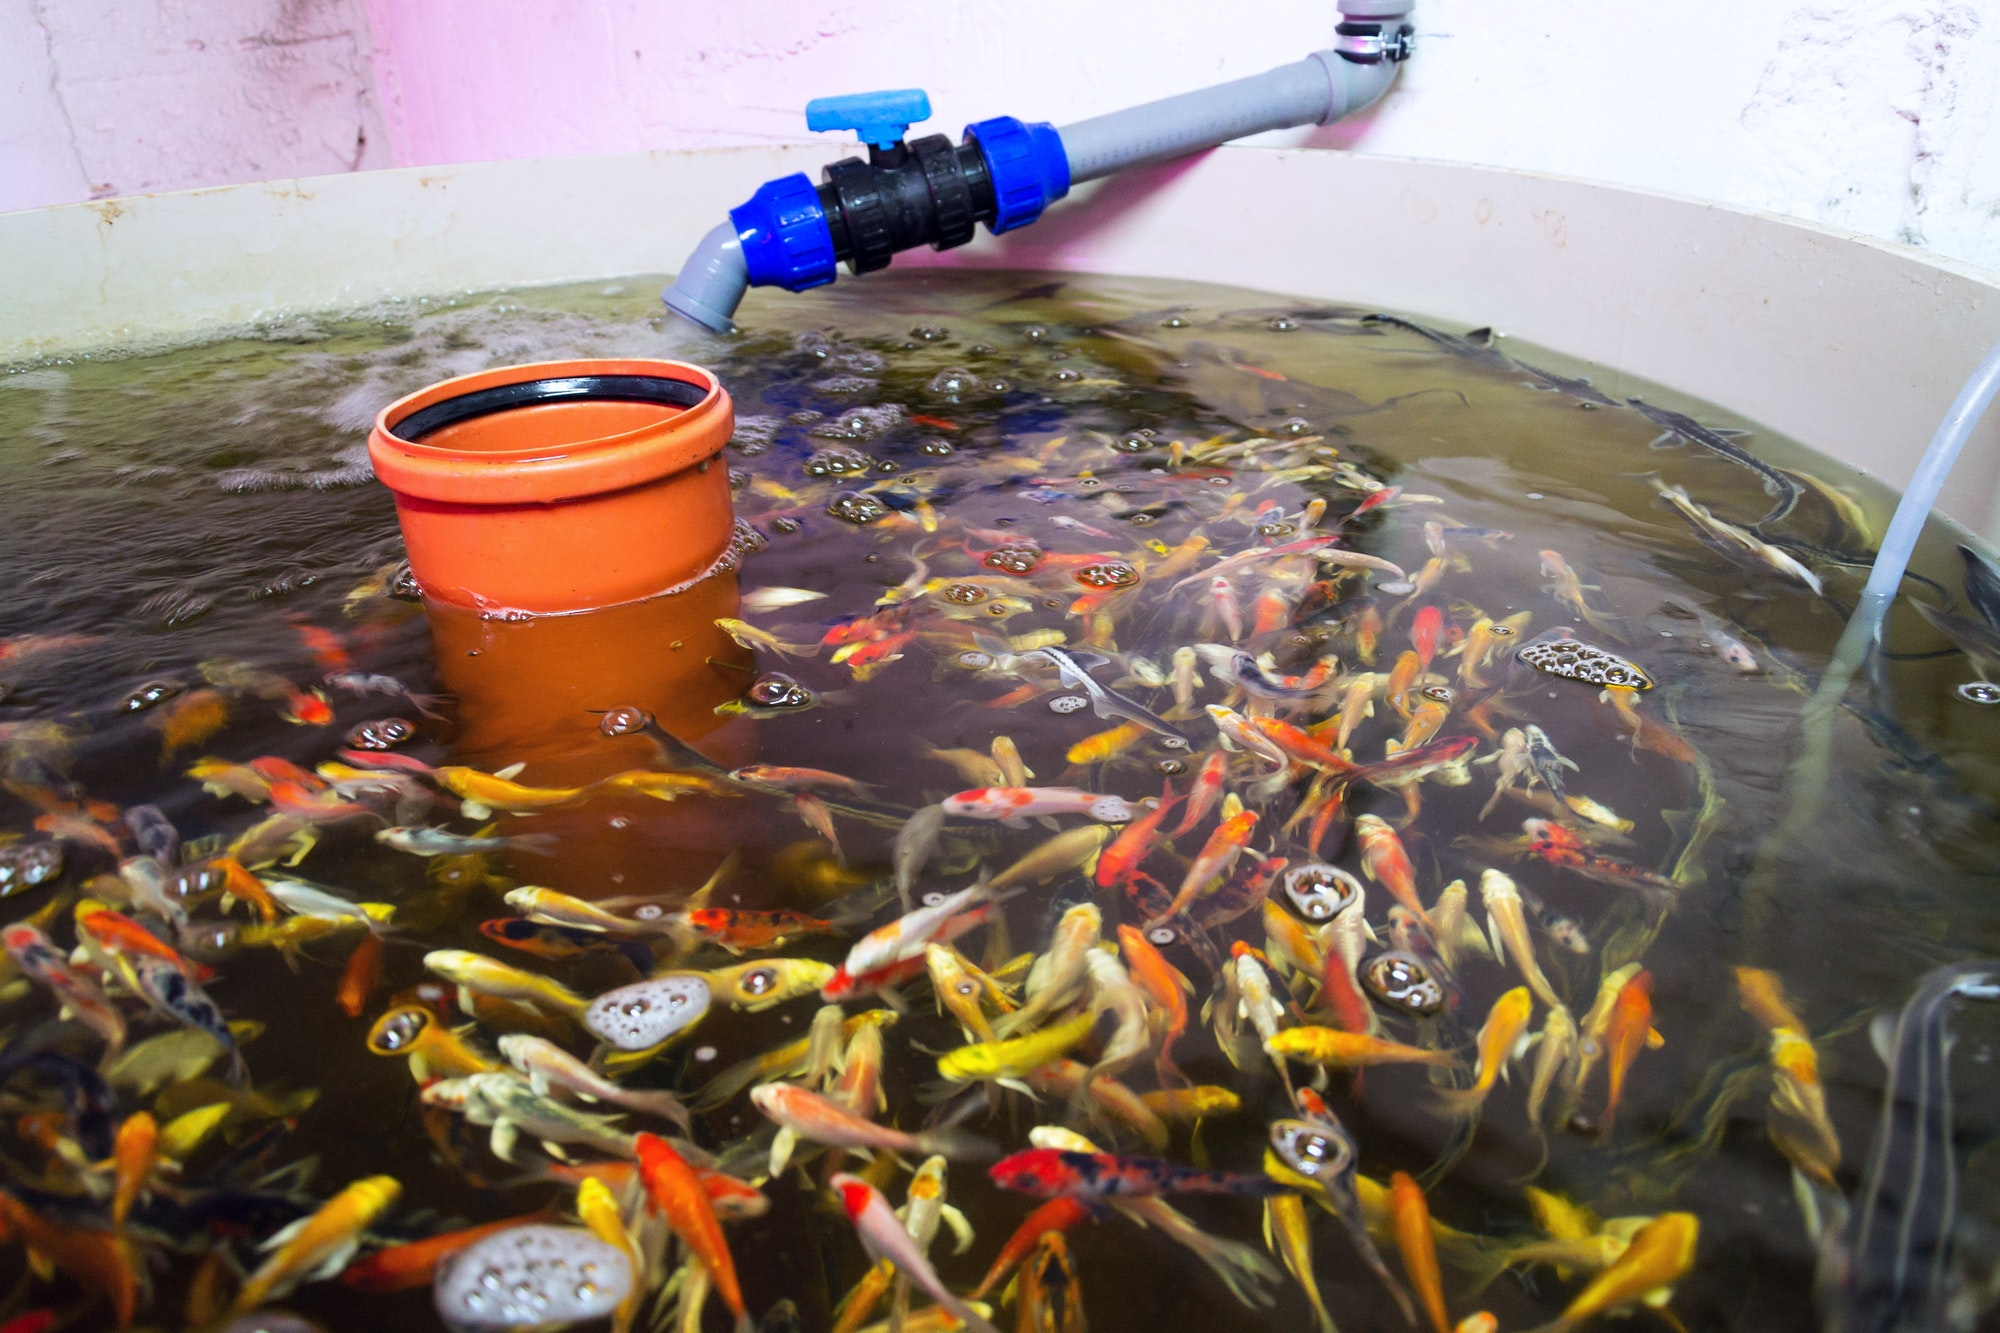 Indoor Growers World - Various fish species in aquaponics system, combination of fish aquaculture with hydroponics